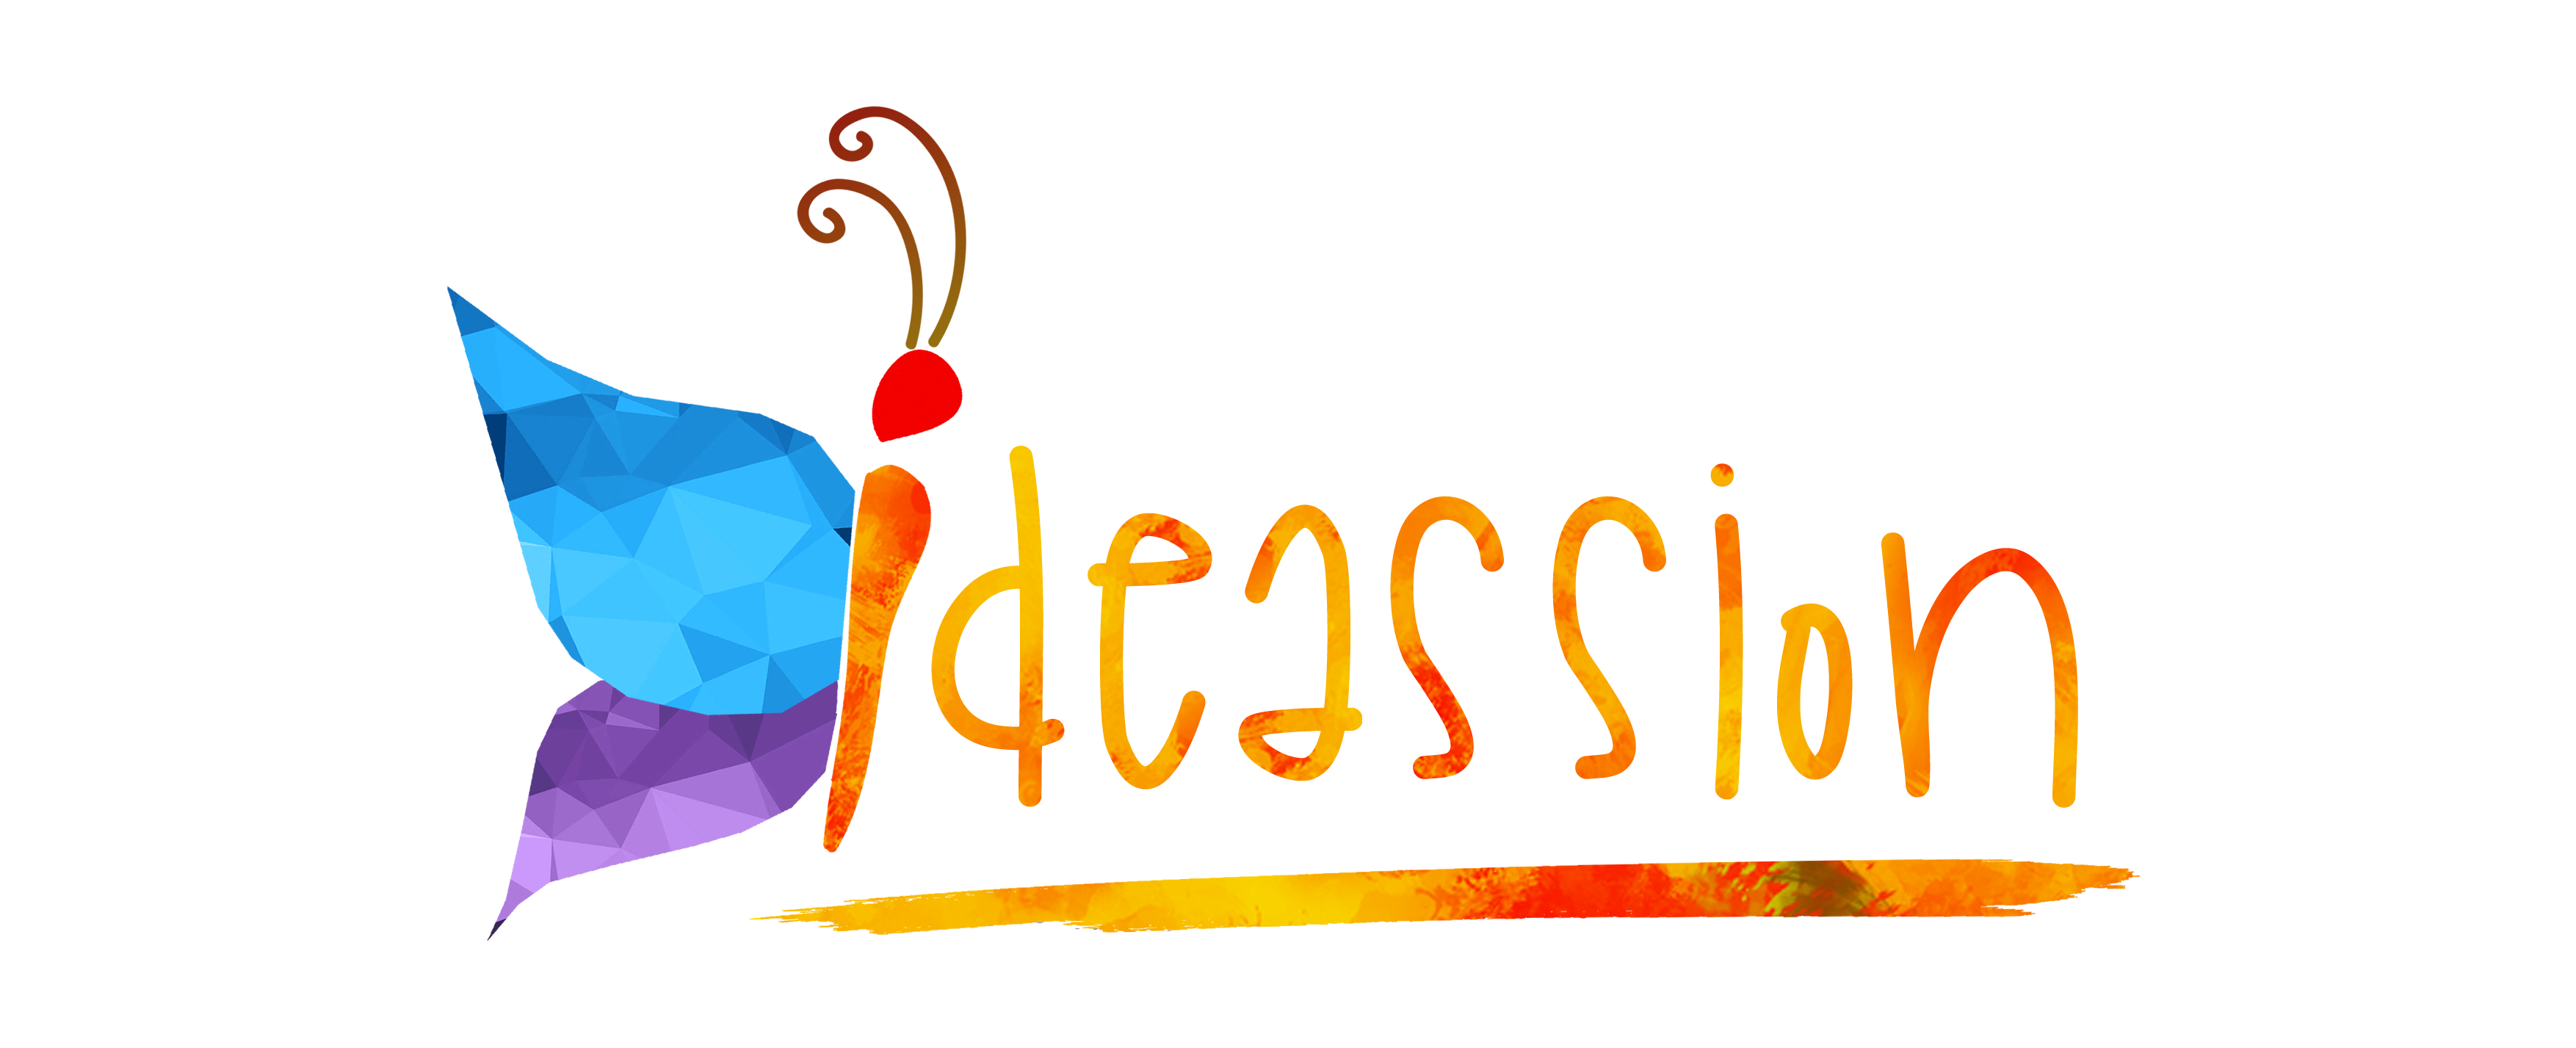 Employee clipart group teacher. Ideassion was formed by